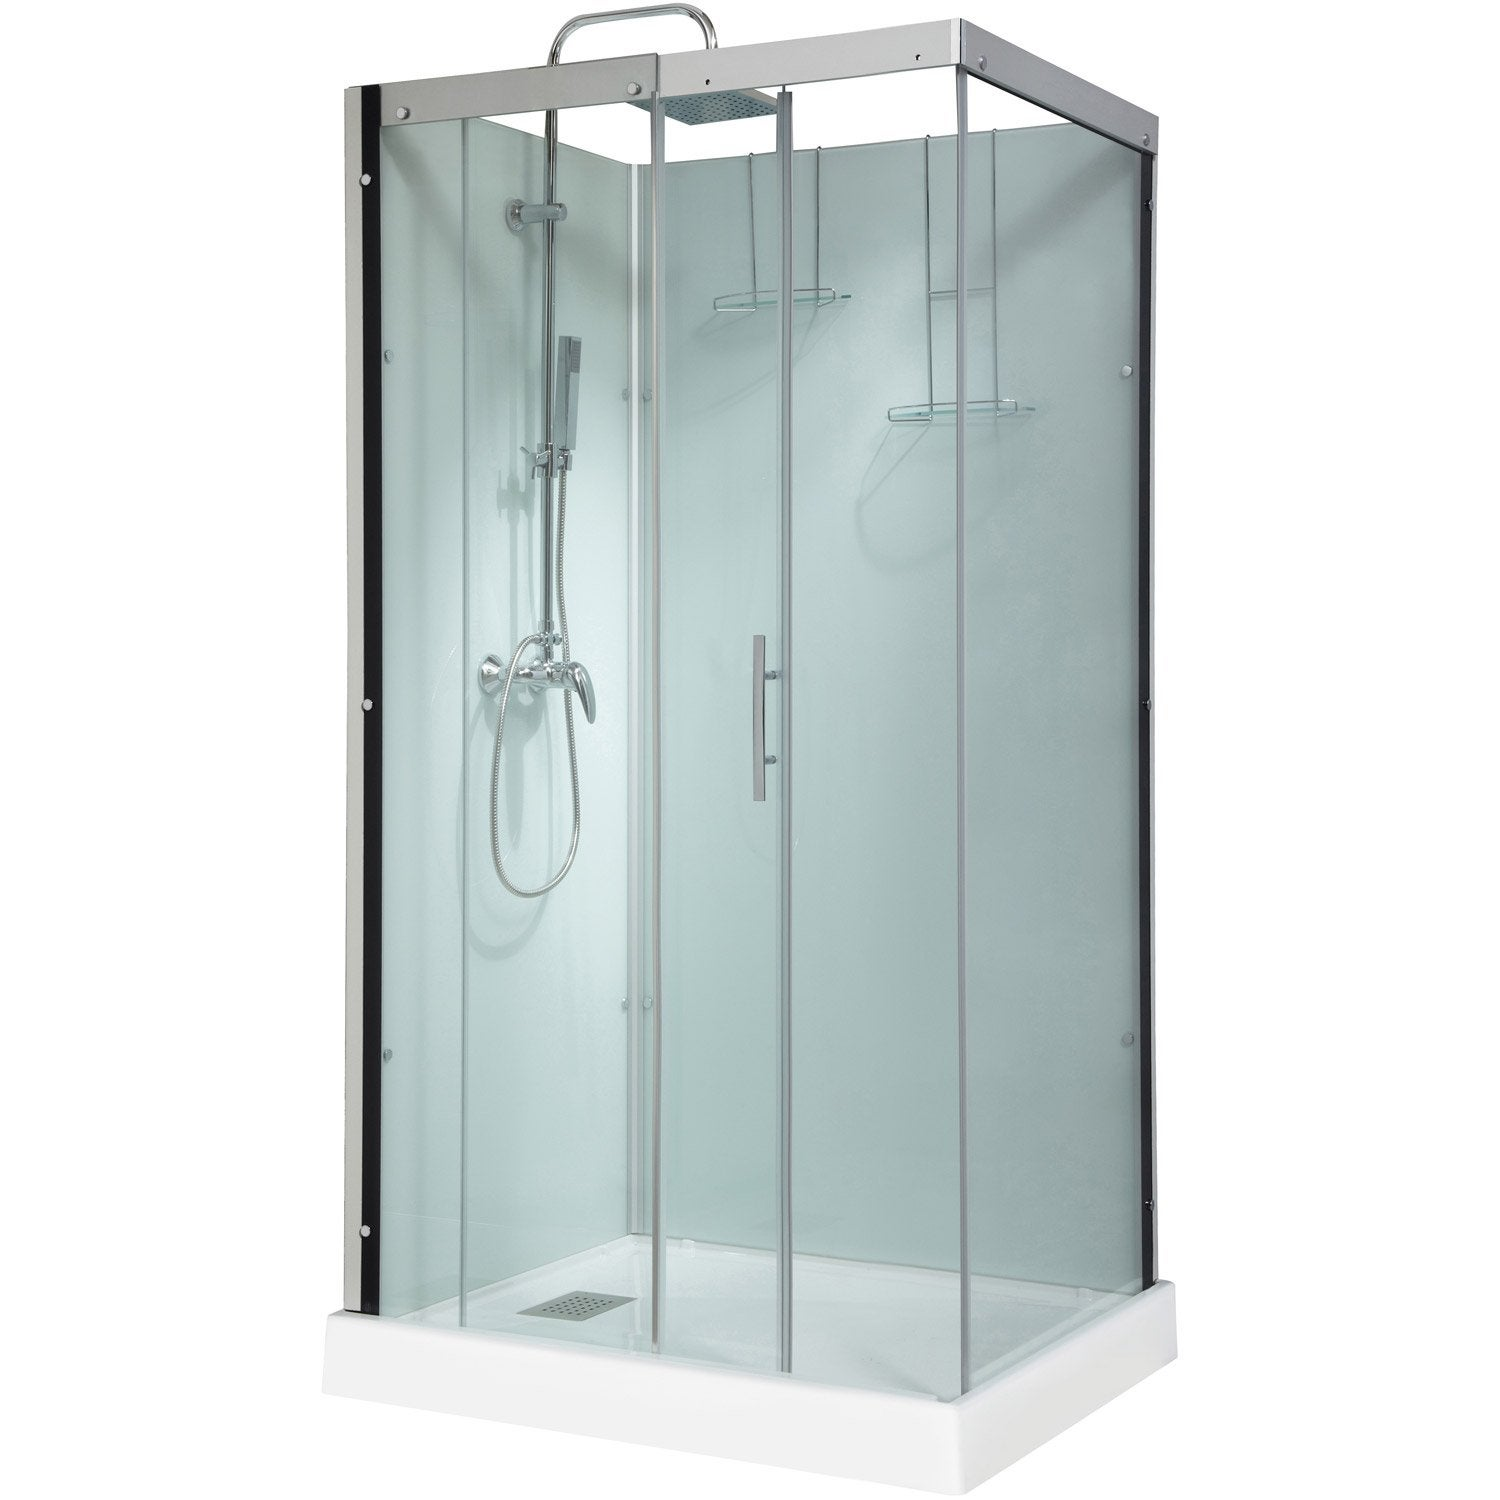 cabine de douche rectangulaire 110x80 cm thalaglass 2 mitigeur leroy merlin. Black Bedroom Furniture Sets. Home Design Ideas